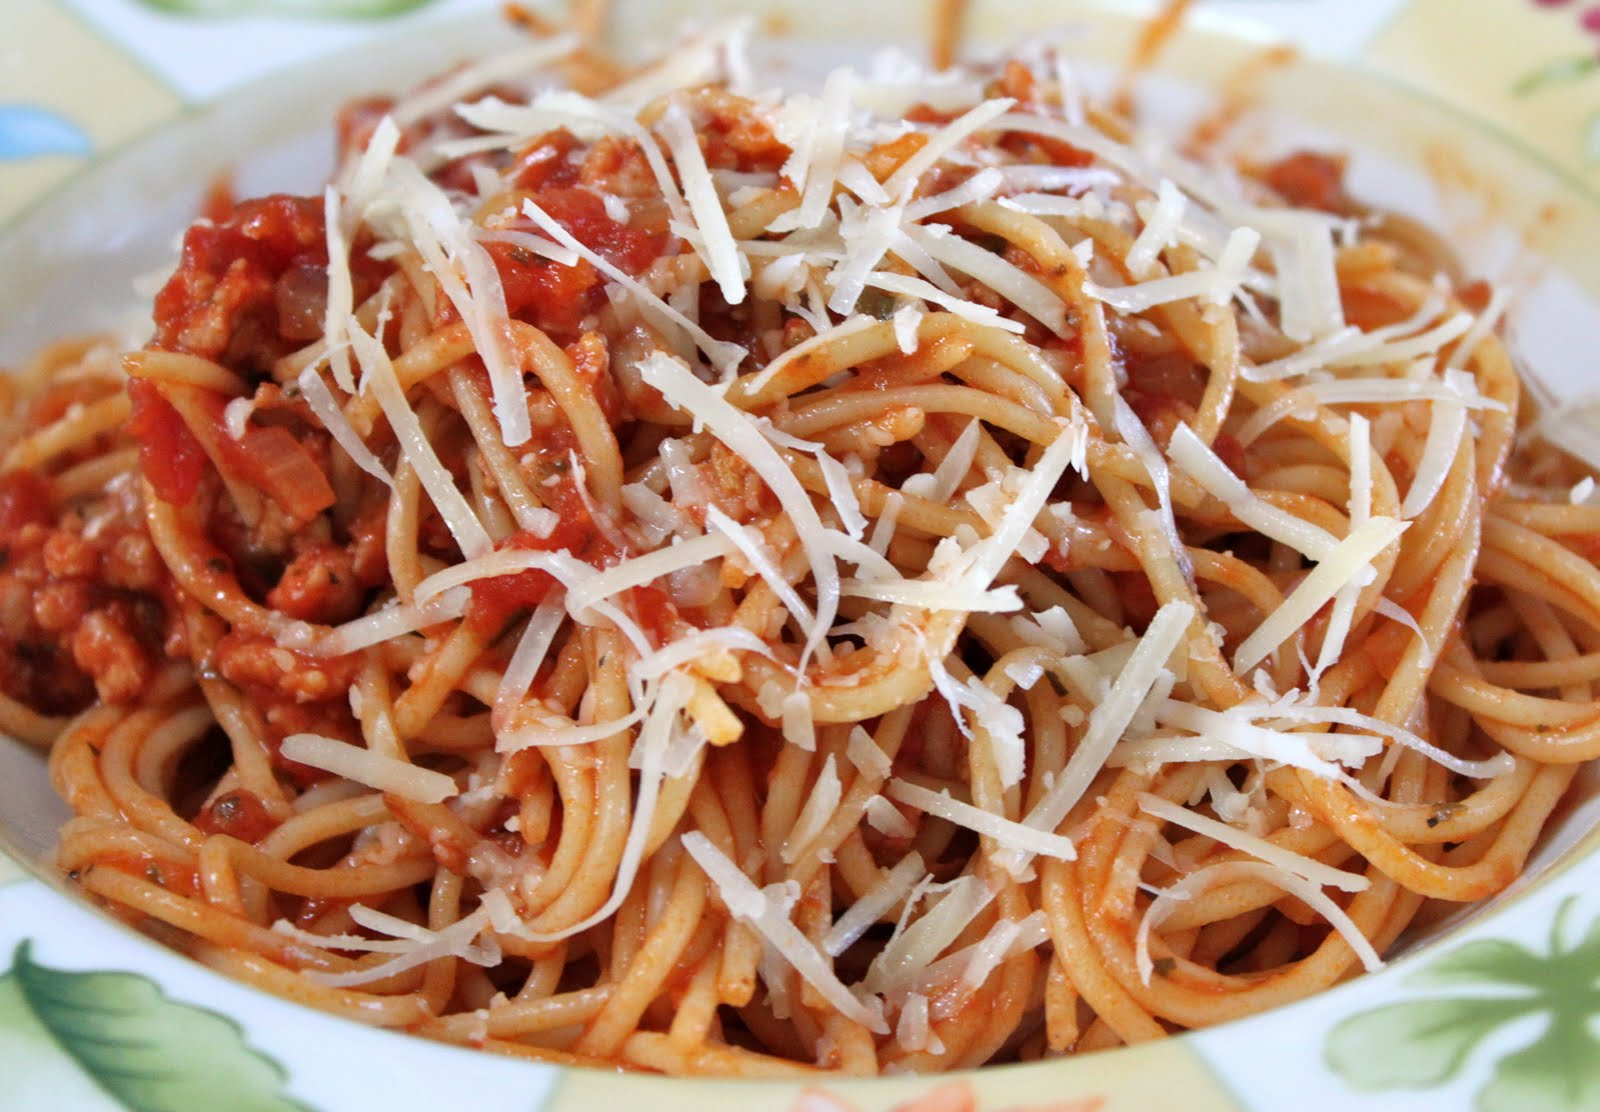 my nutritious dish: pasta sauce with sweet italian turkey sausage